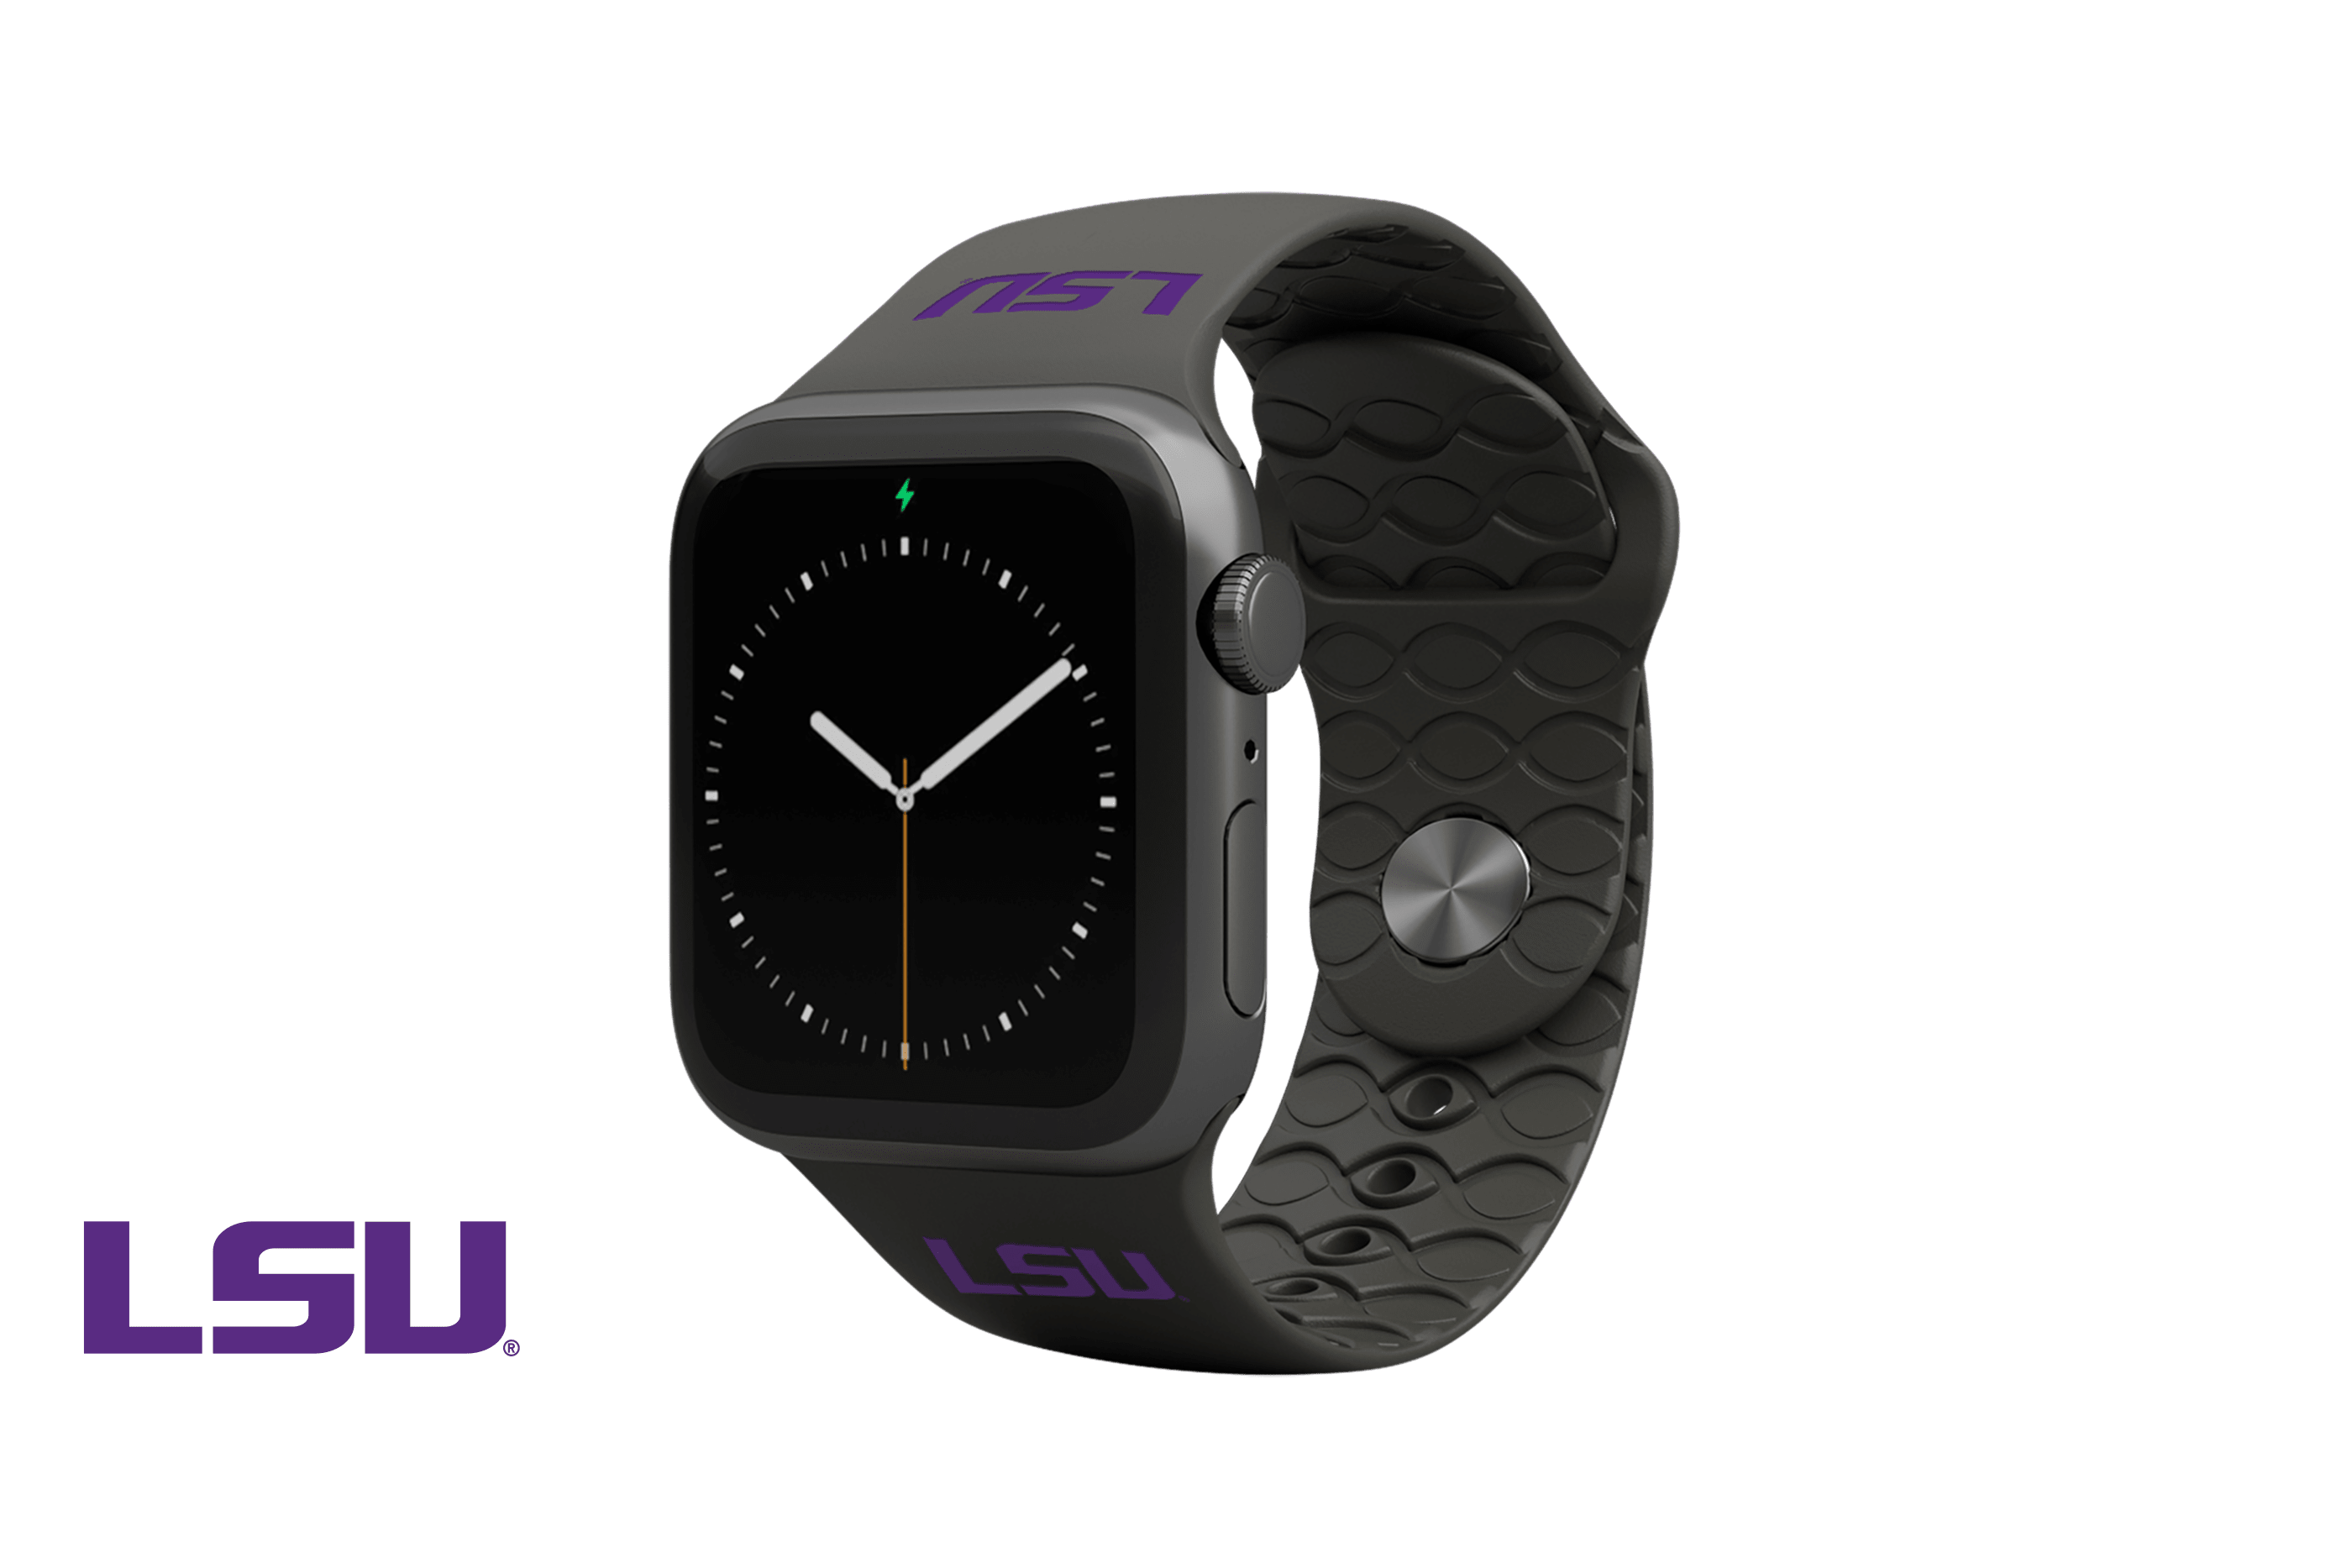 Apple Watch Band College LSU Black with gray hardware viewed front on